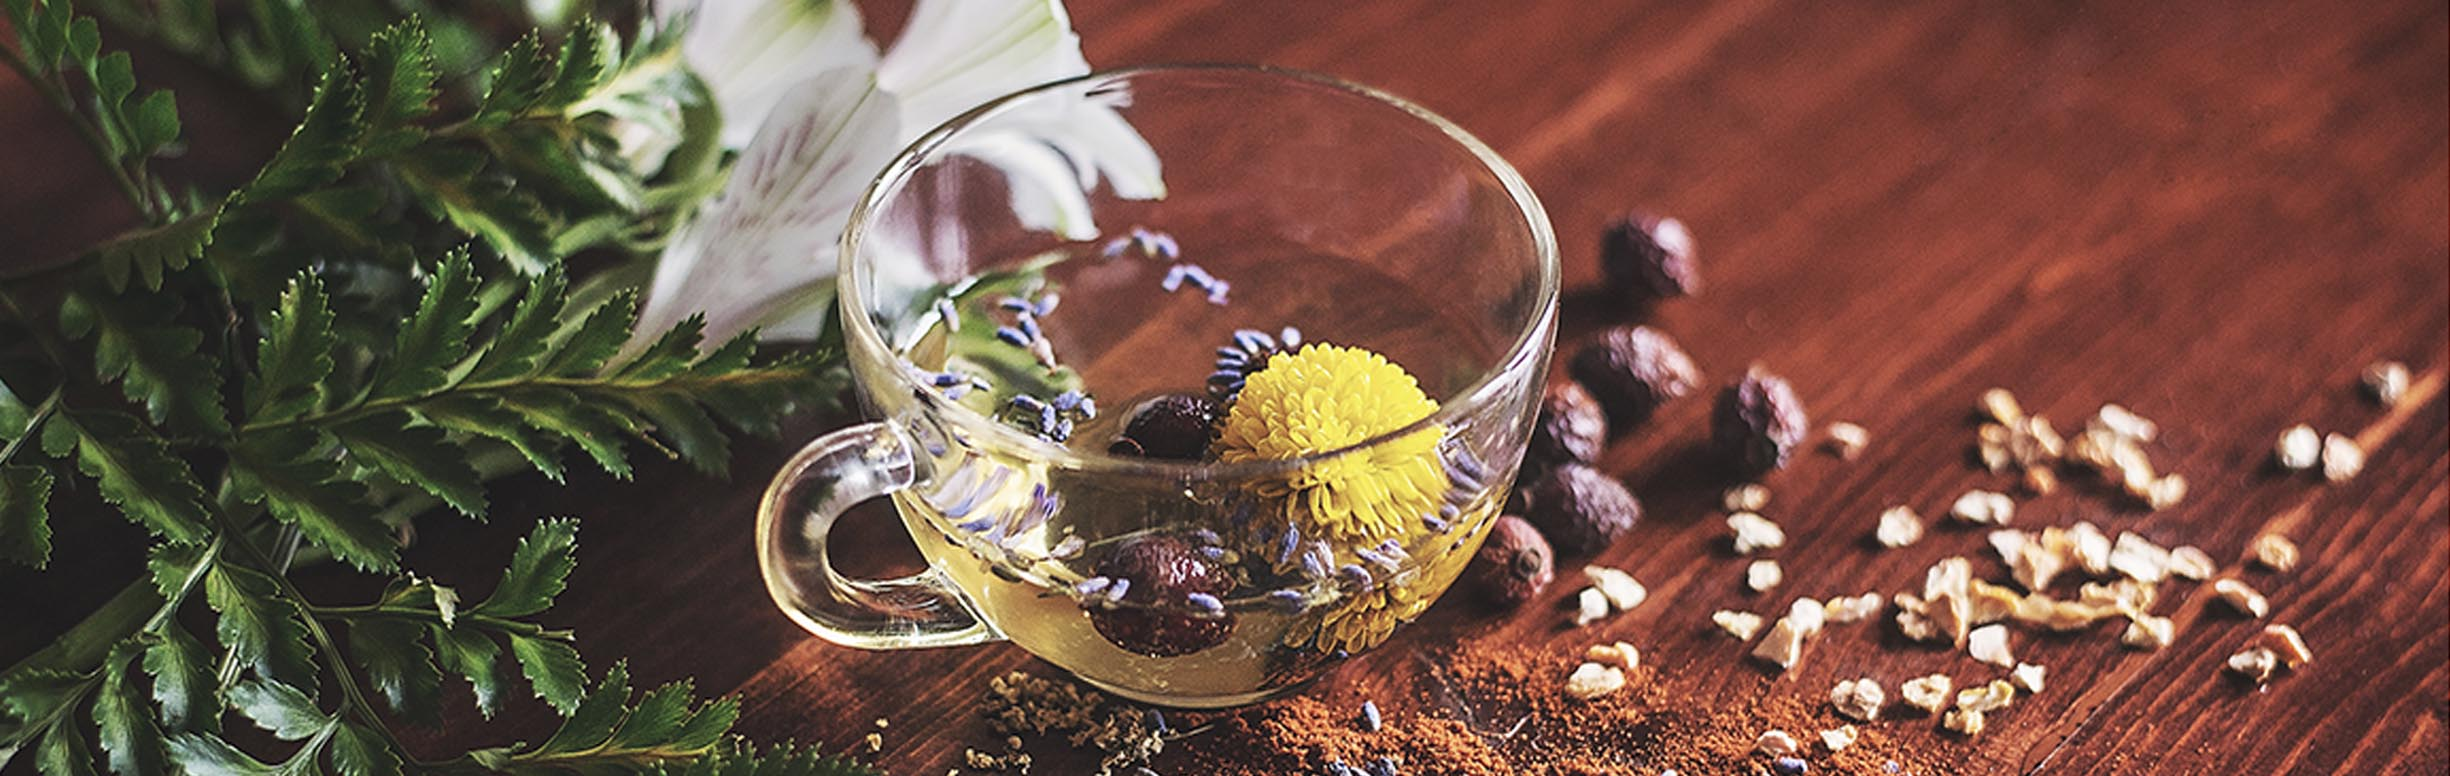 Tea a natural product with a miraculous health effect